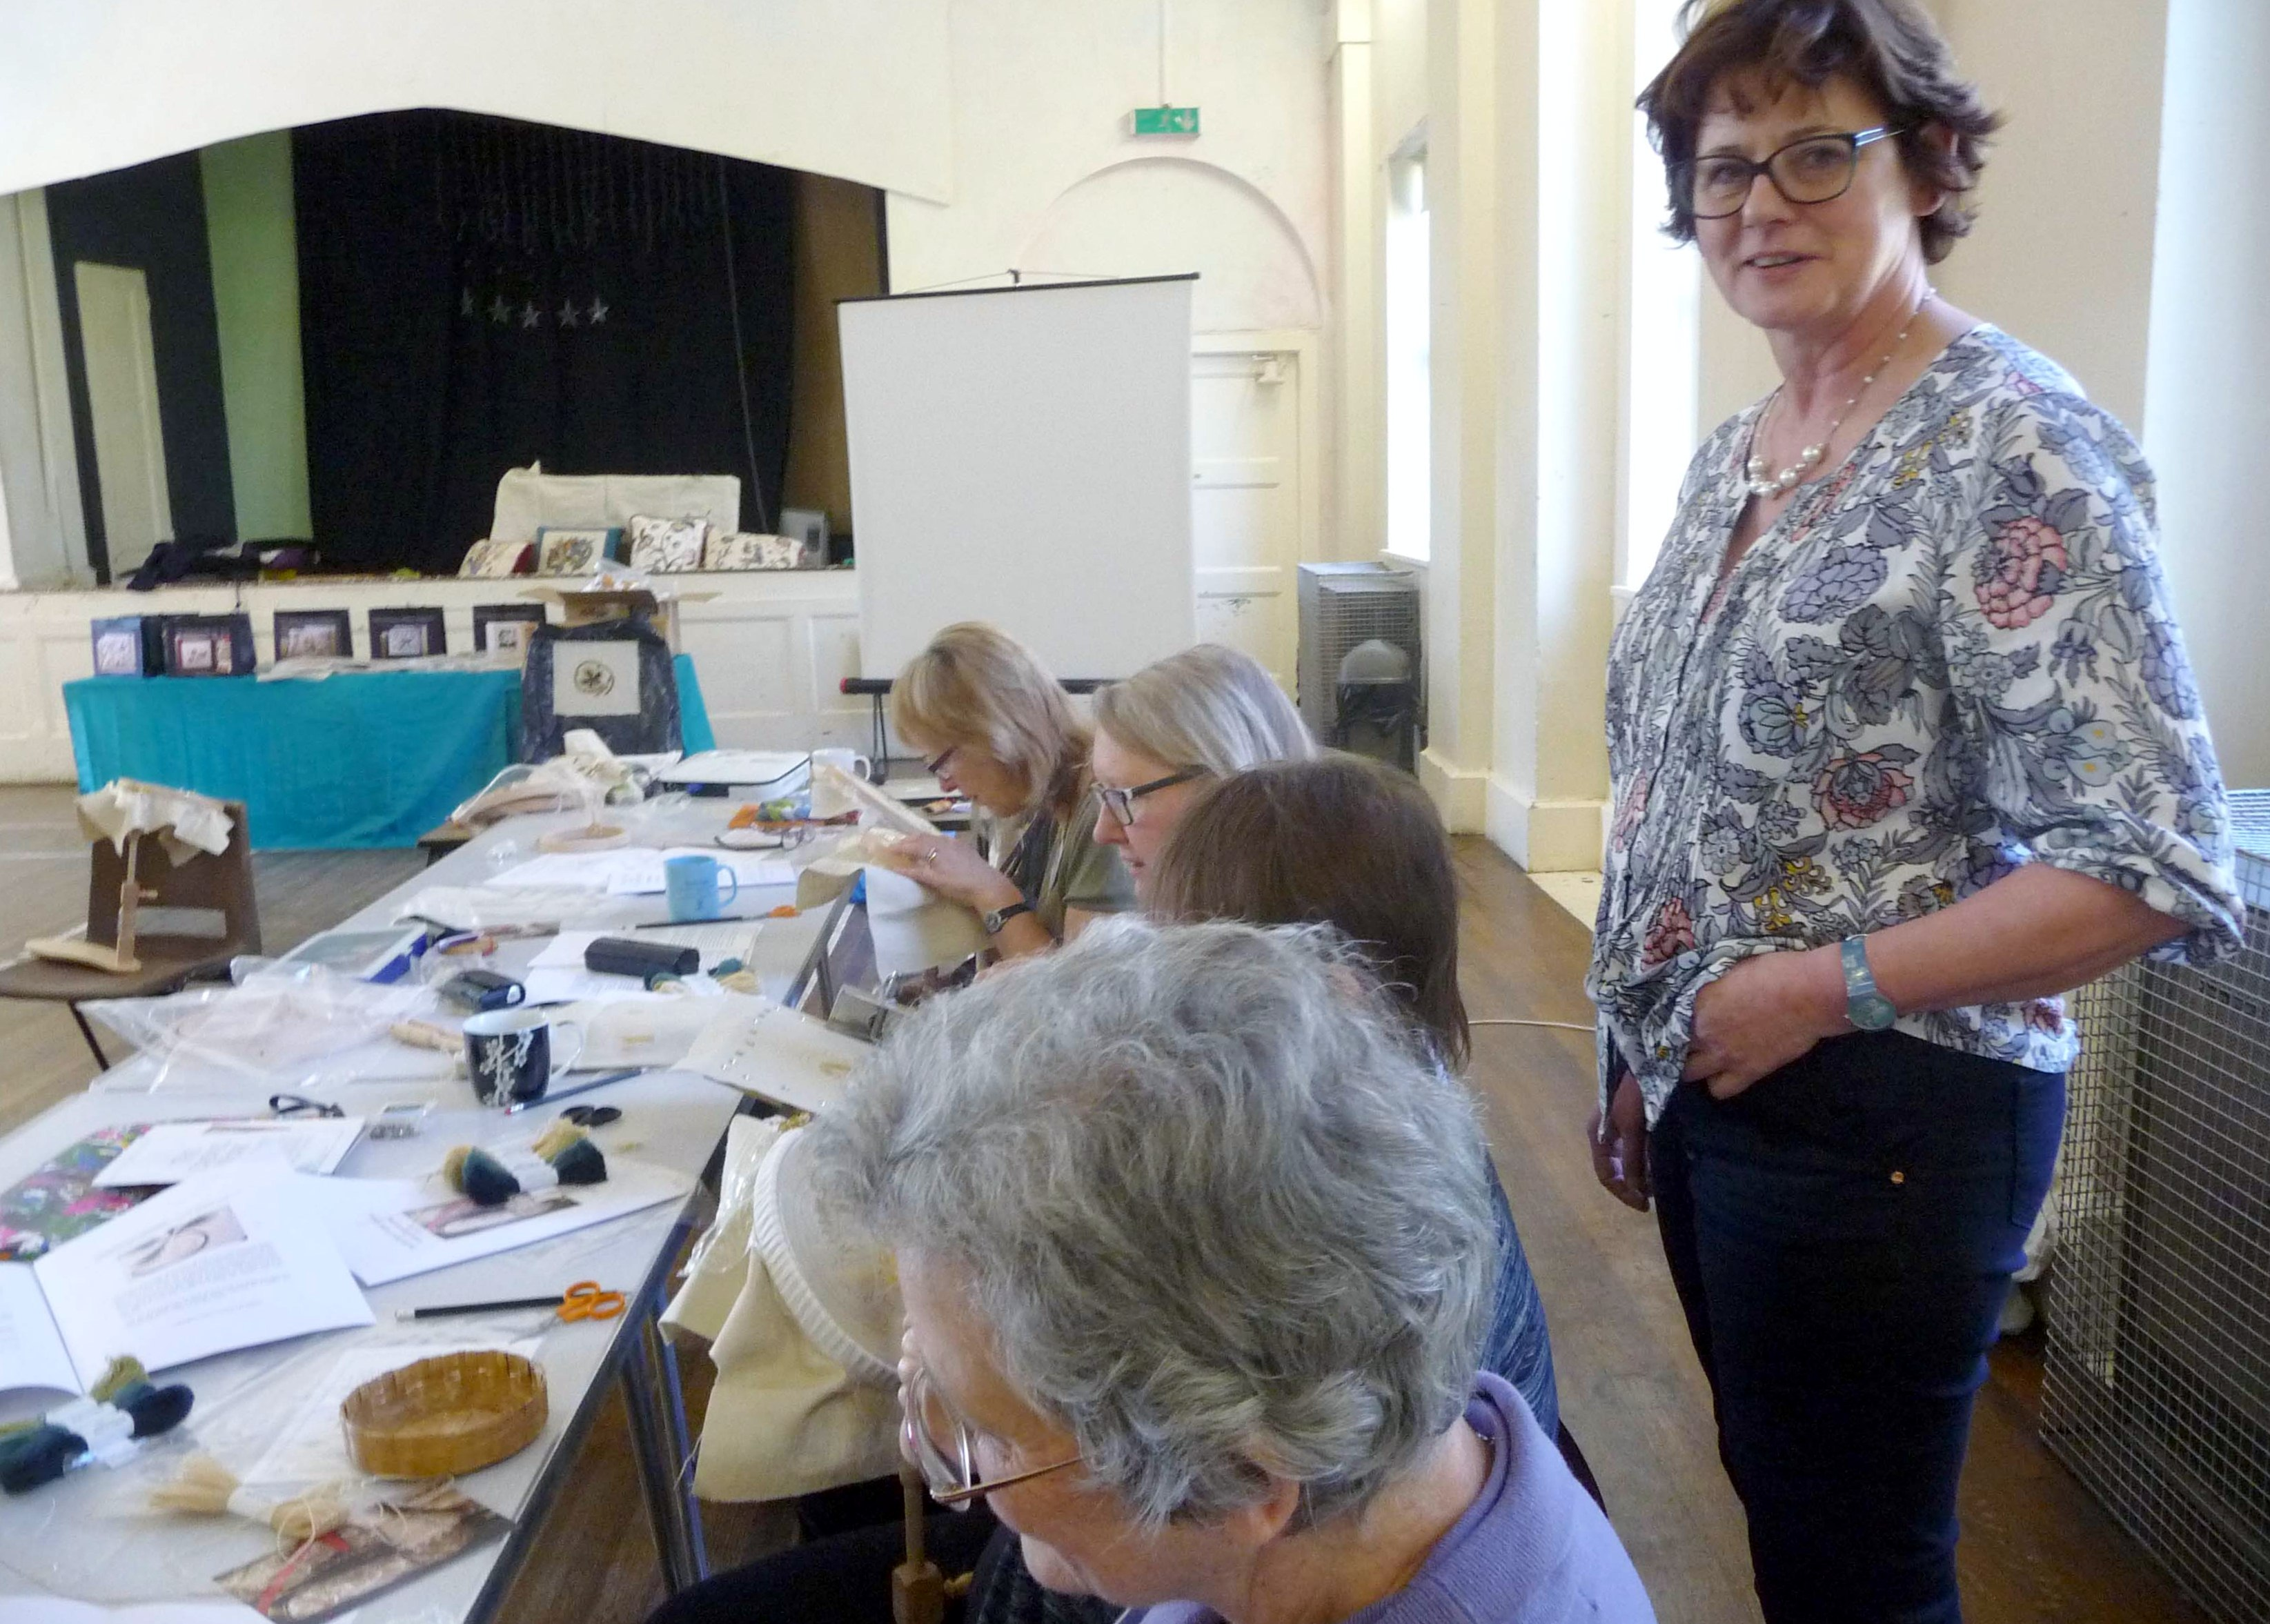 Philipa Turnbull is our Tutor at a crewelwork embroidery workshop